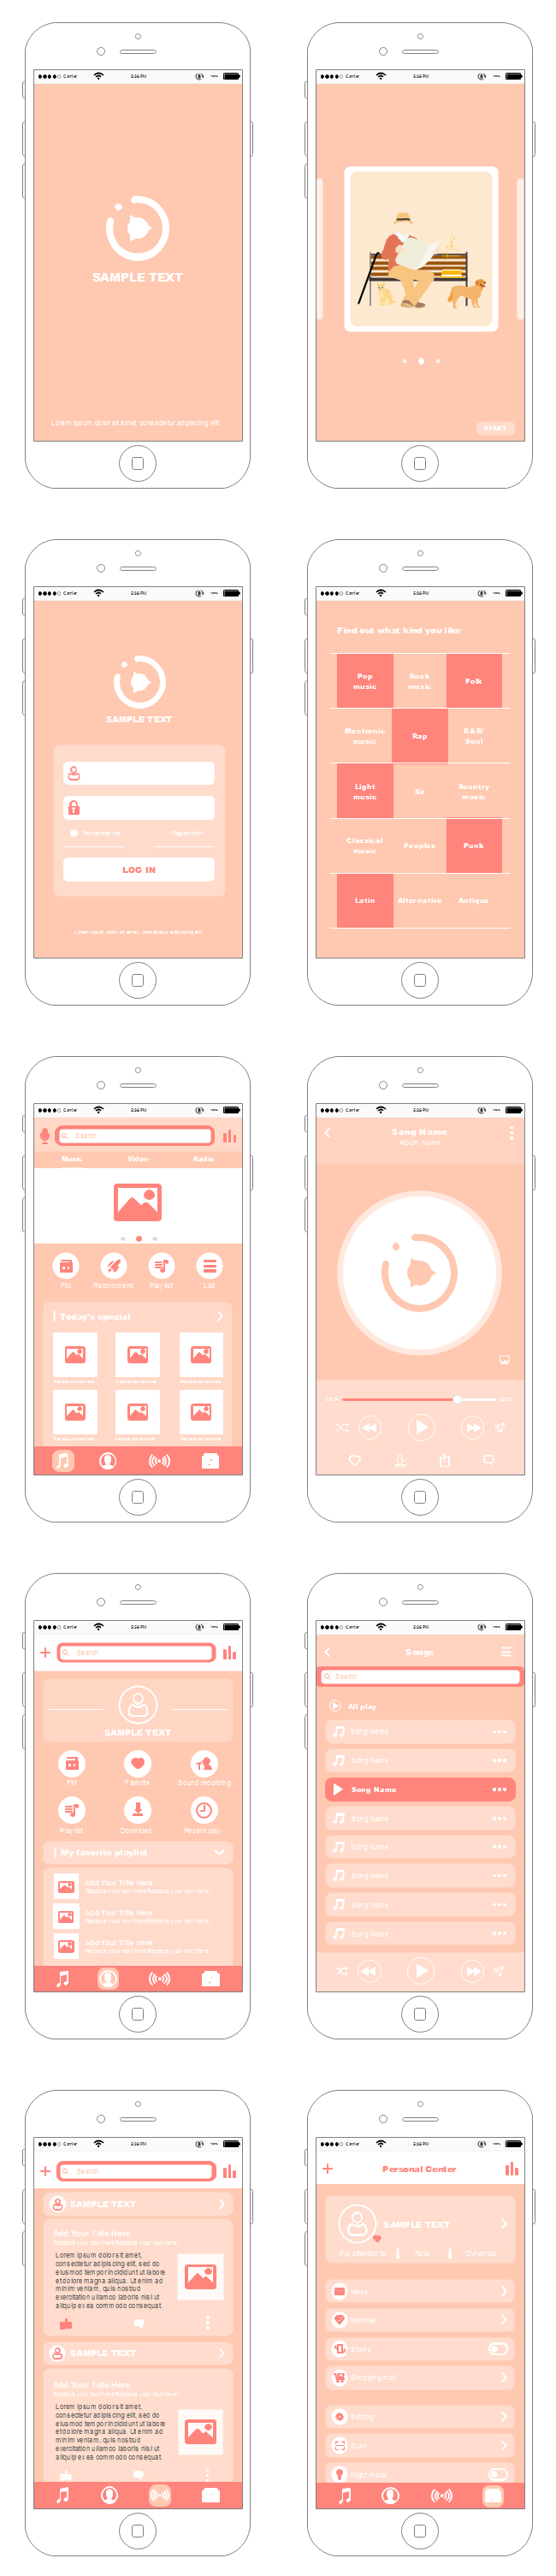 IPhone App UI Wireframe